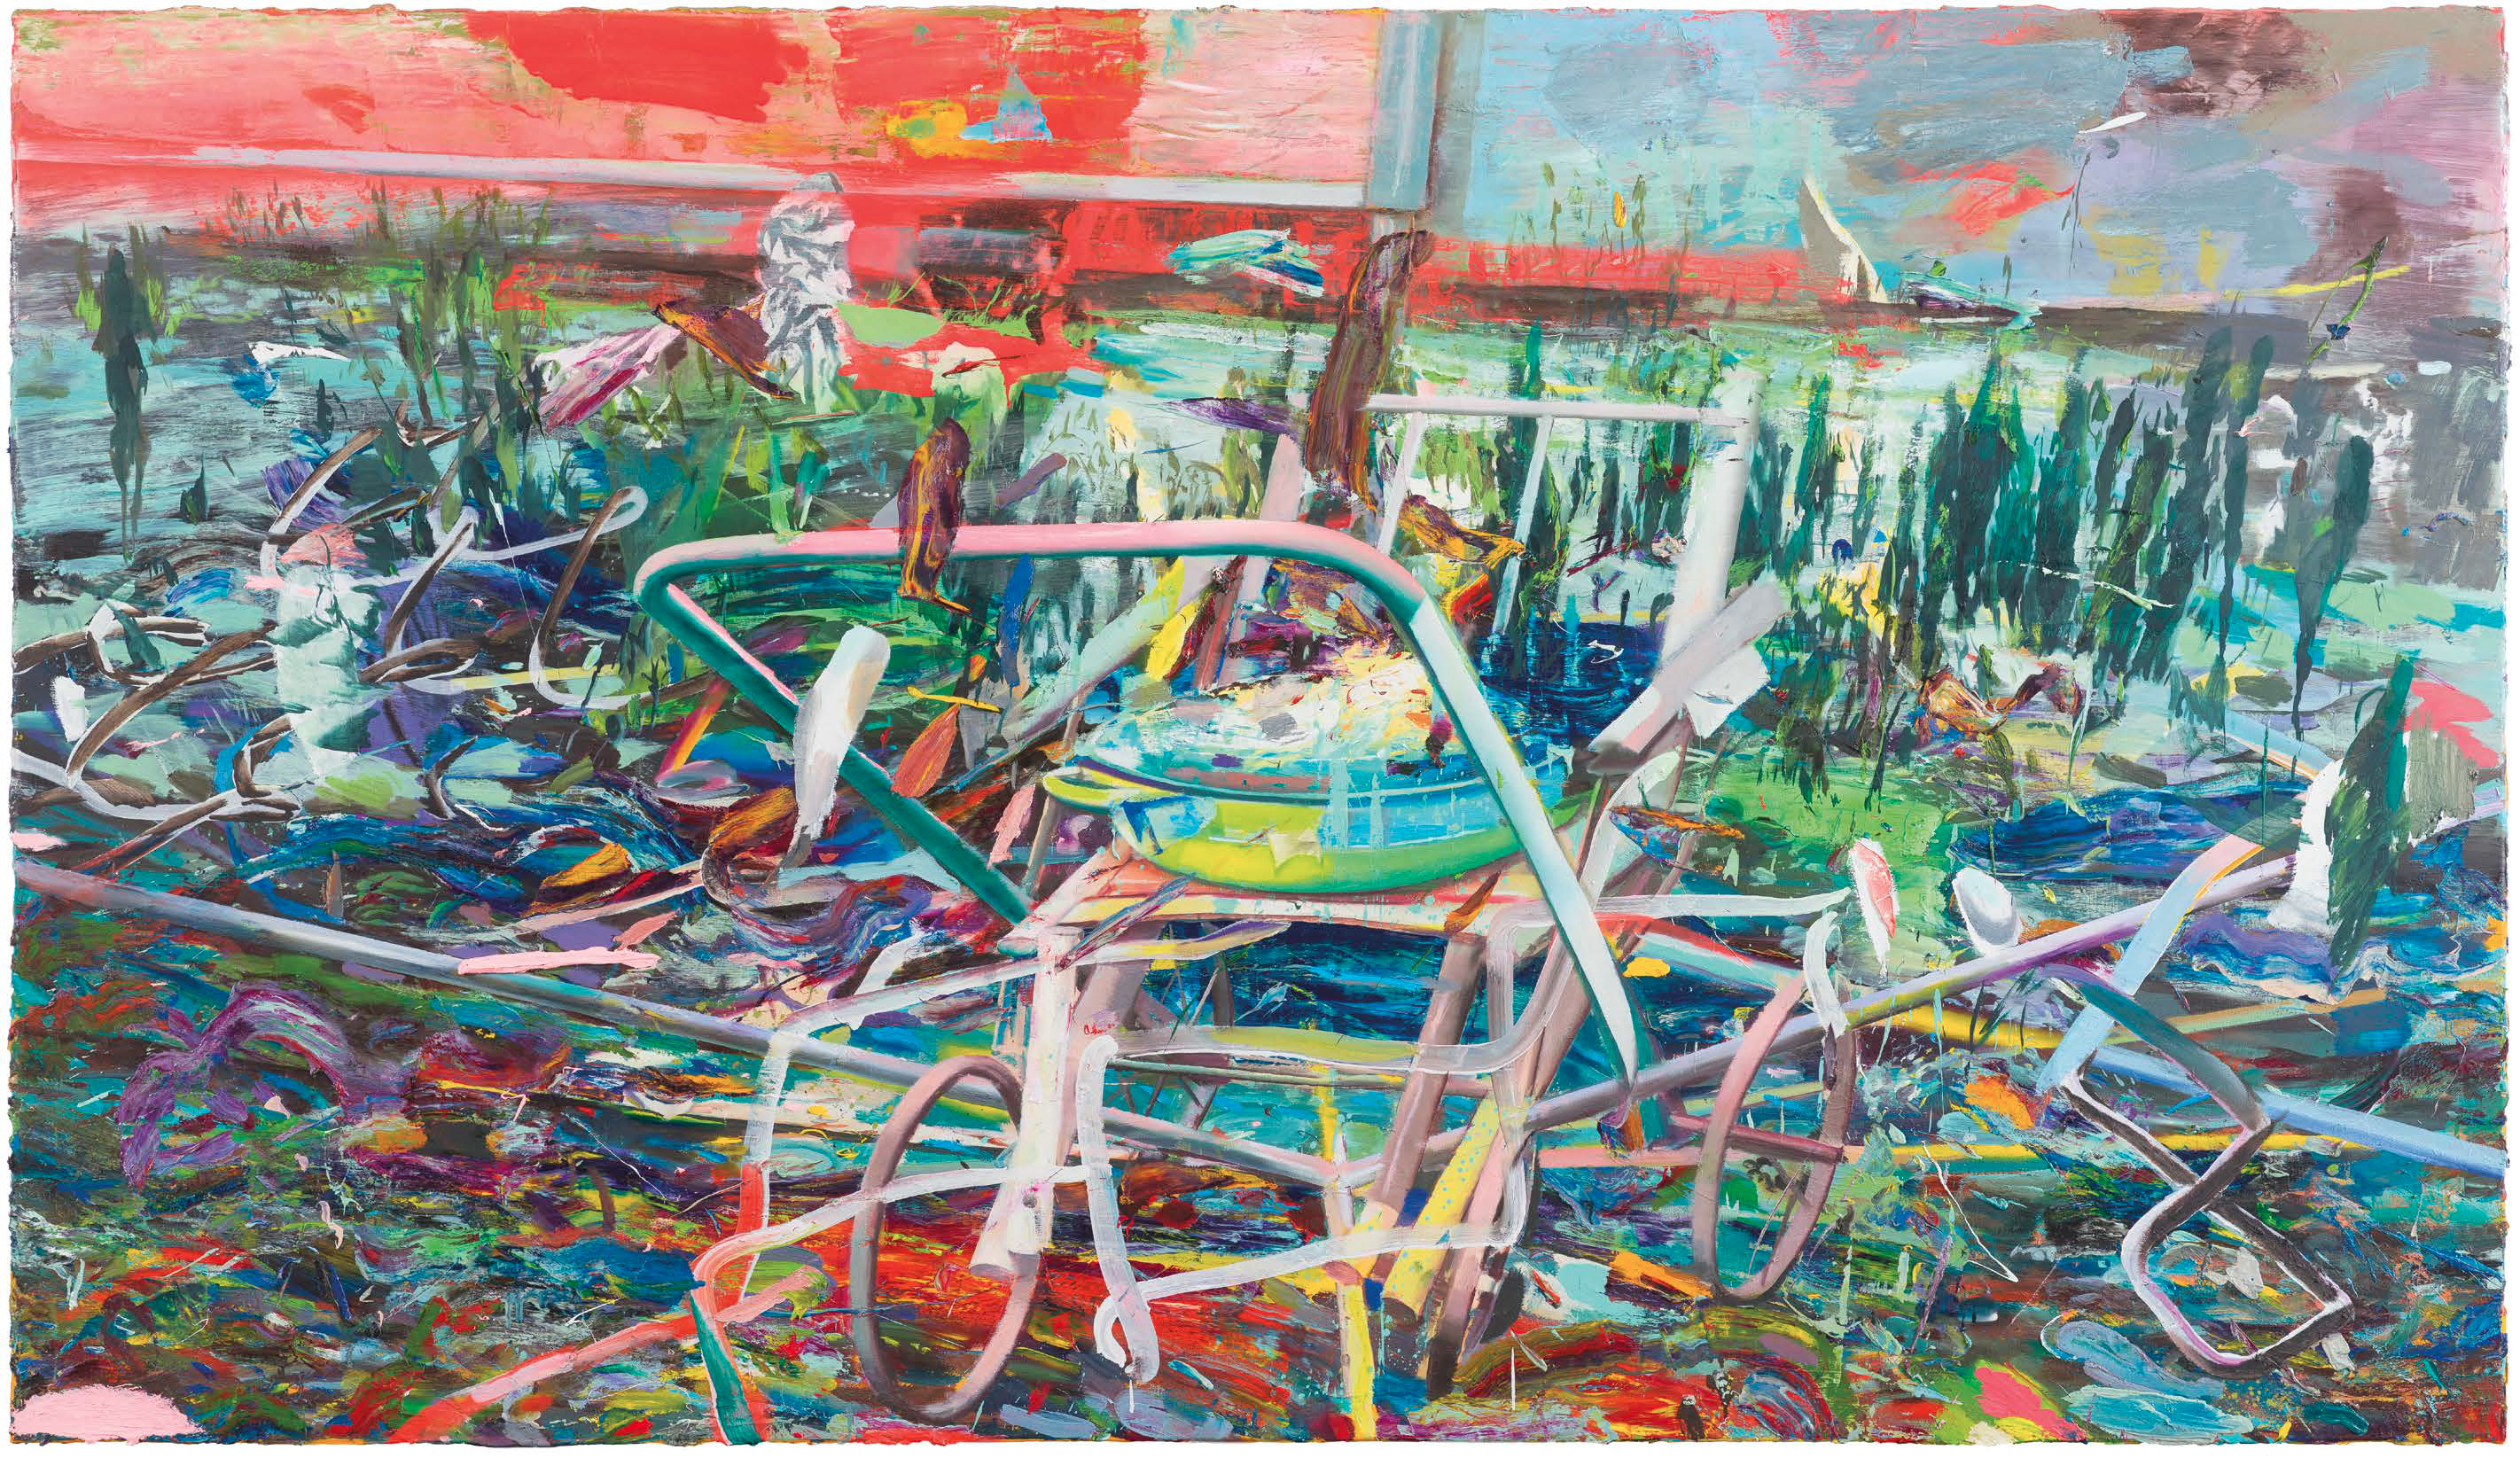 LYING OUT 2015 - 2016 OIL ON CANVAS 133 x 220 cm